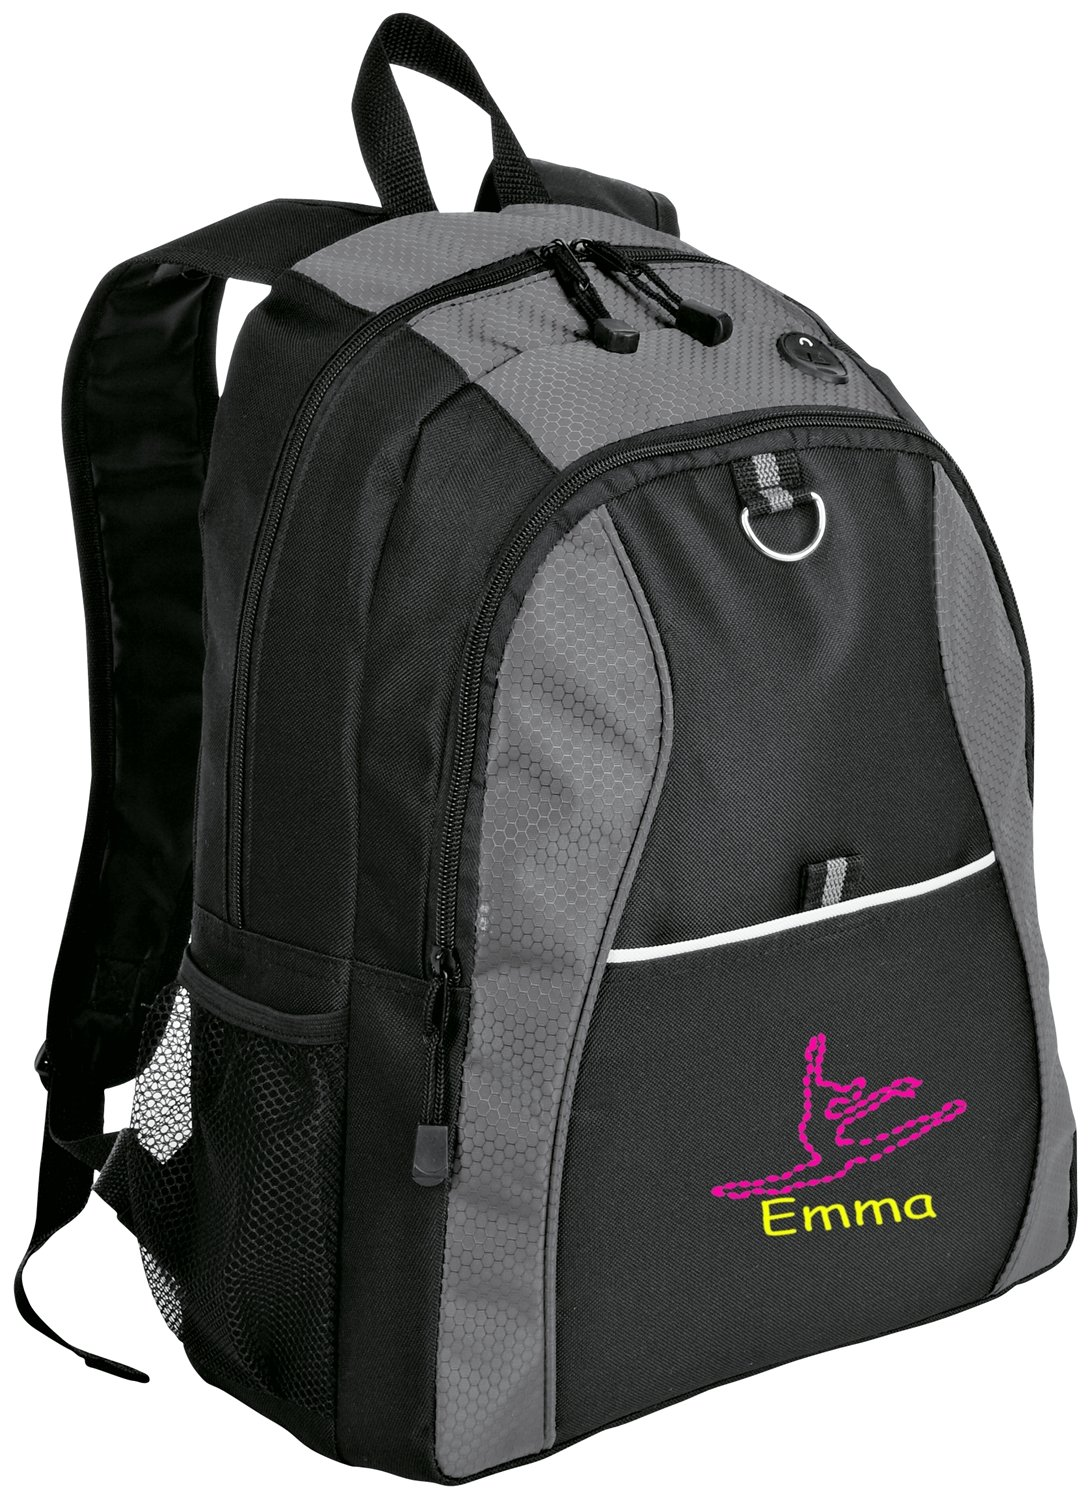 all about me company Contrast Honeycomb Backpack | Personalized Dance Book Bag (Grey/Black) by all about me company